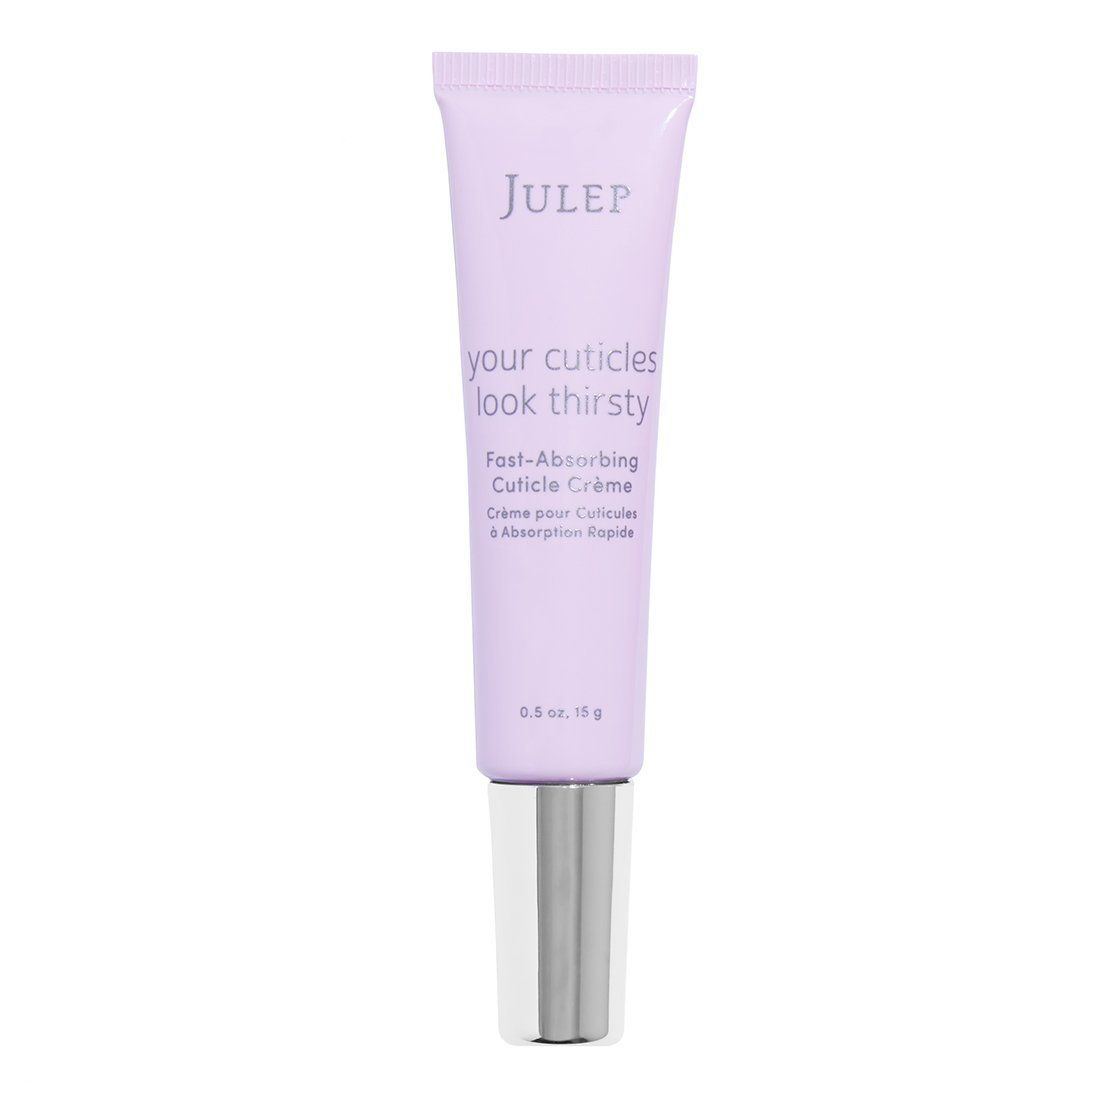 10 Best Cuticle Creams in 2018 - Nourishing Cuticle Butters and Creams